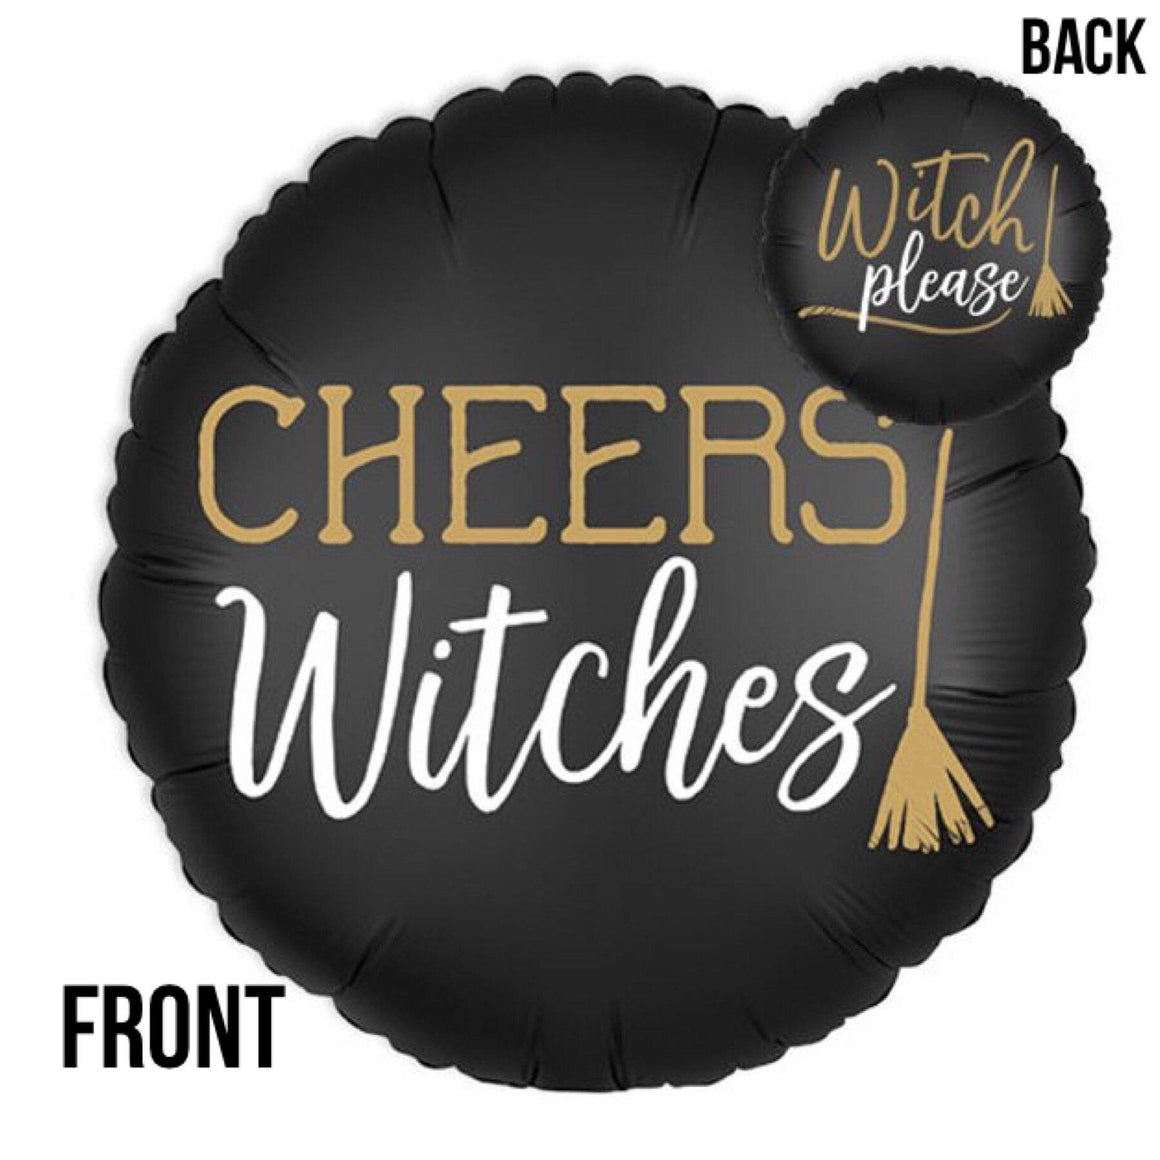 BALLOONS - WITCH PLEASE / CHEERS WITCHES, Balloons, Anagram - Bon + Co. Party Studio